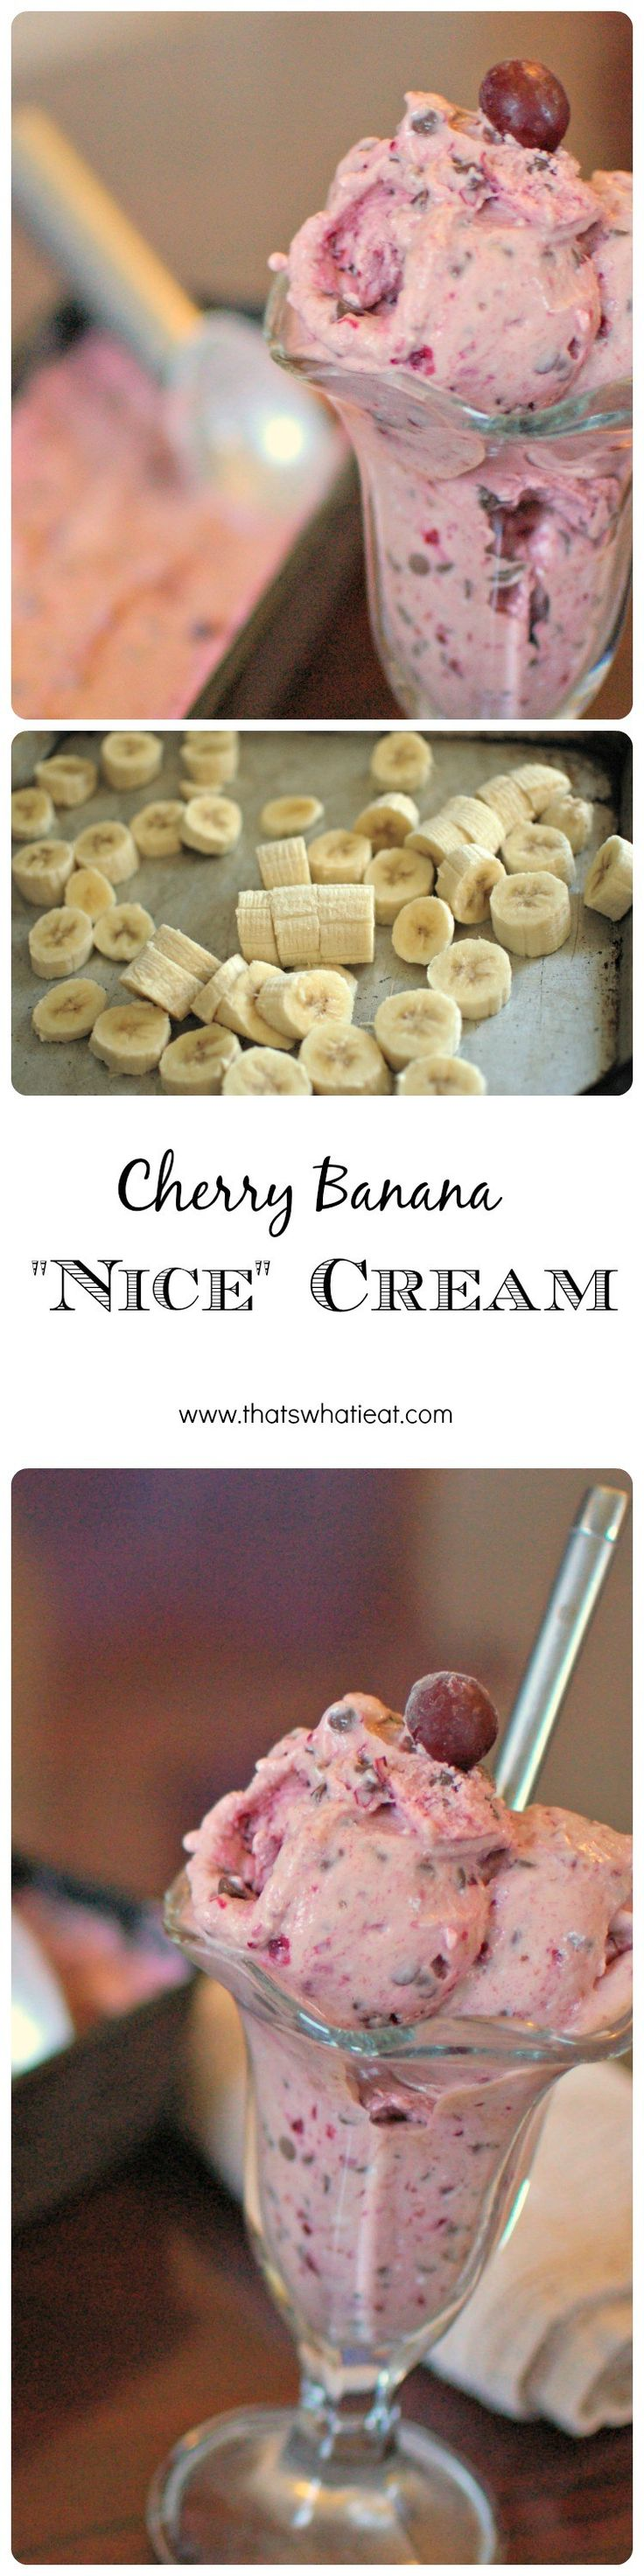 Cherry+Banana+Nice+Cream+-+Losing+weight+with+real,+unprocessed+food.